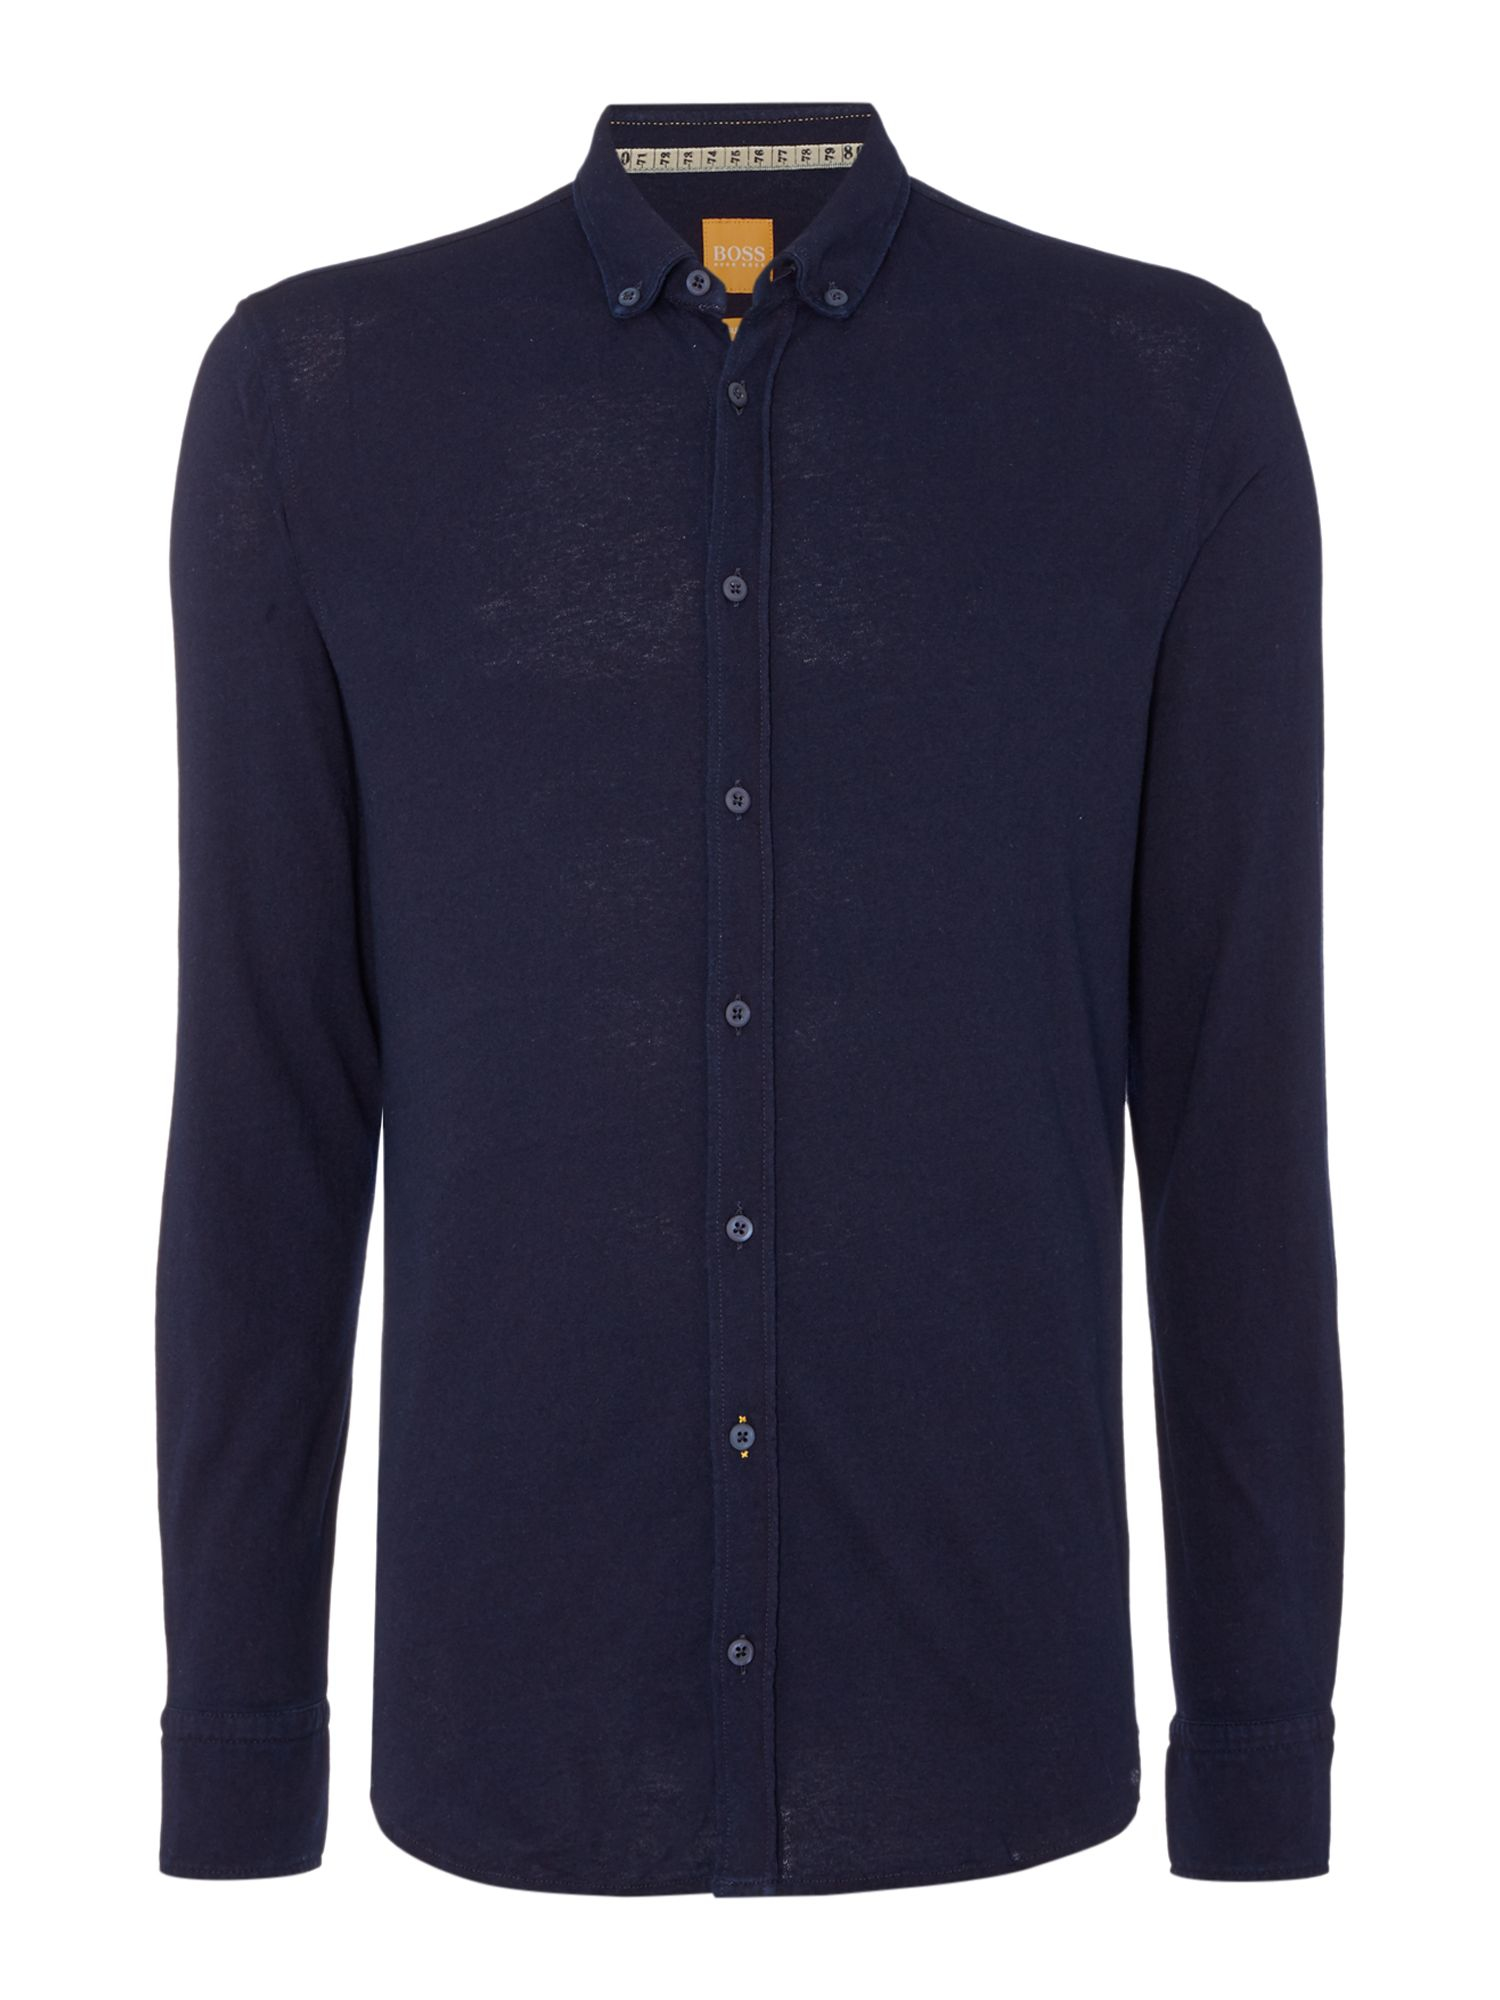 Boss Edipoe Slim Fit Button Down Jersey Shirt In Blue For